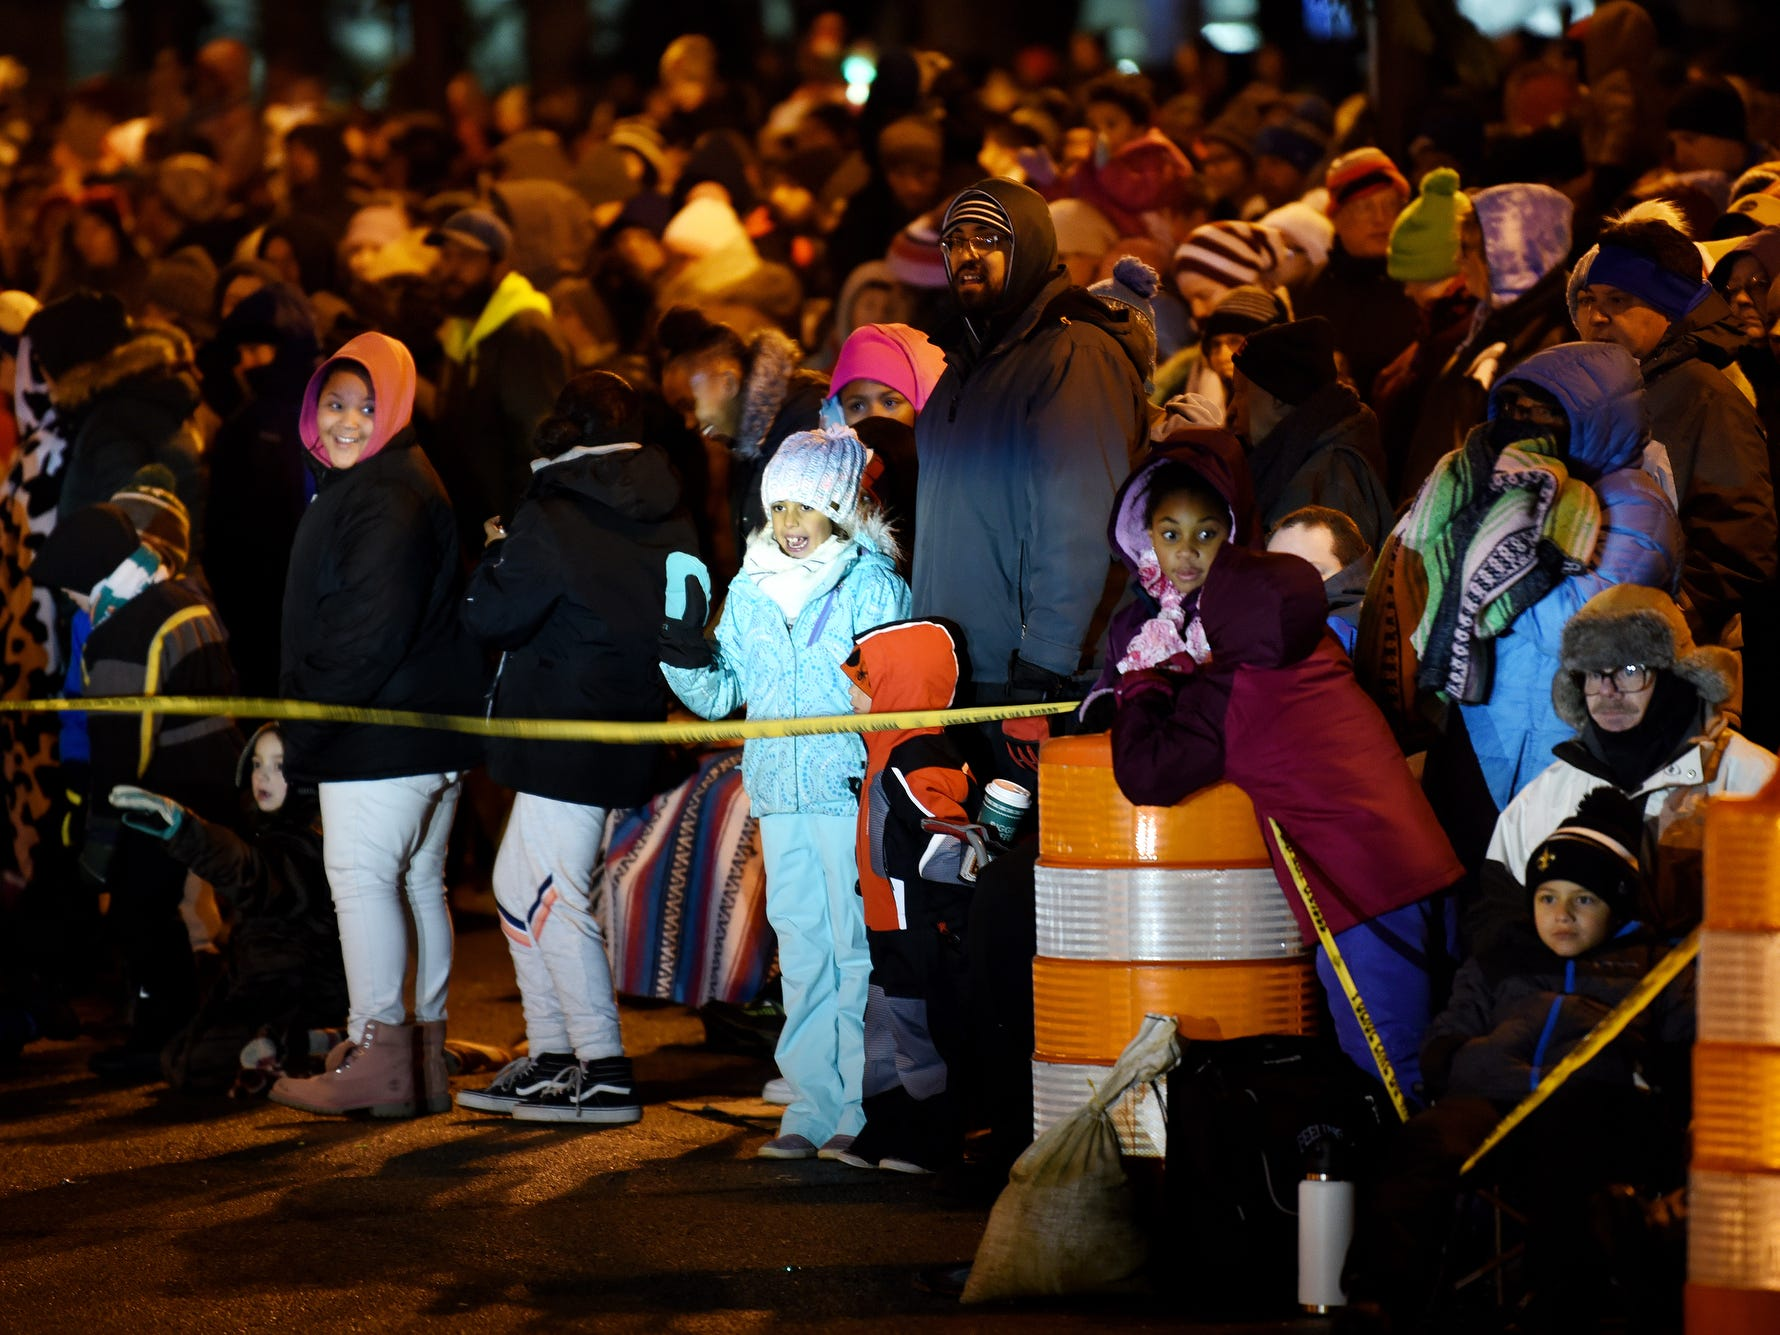 Spectators line Capitol Avenue during the Silver Bells in the City Electric Light Parade on Friday, Nov. 16, 2018, in downtown Lansing.